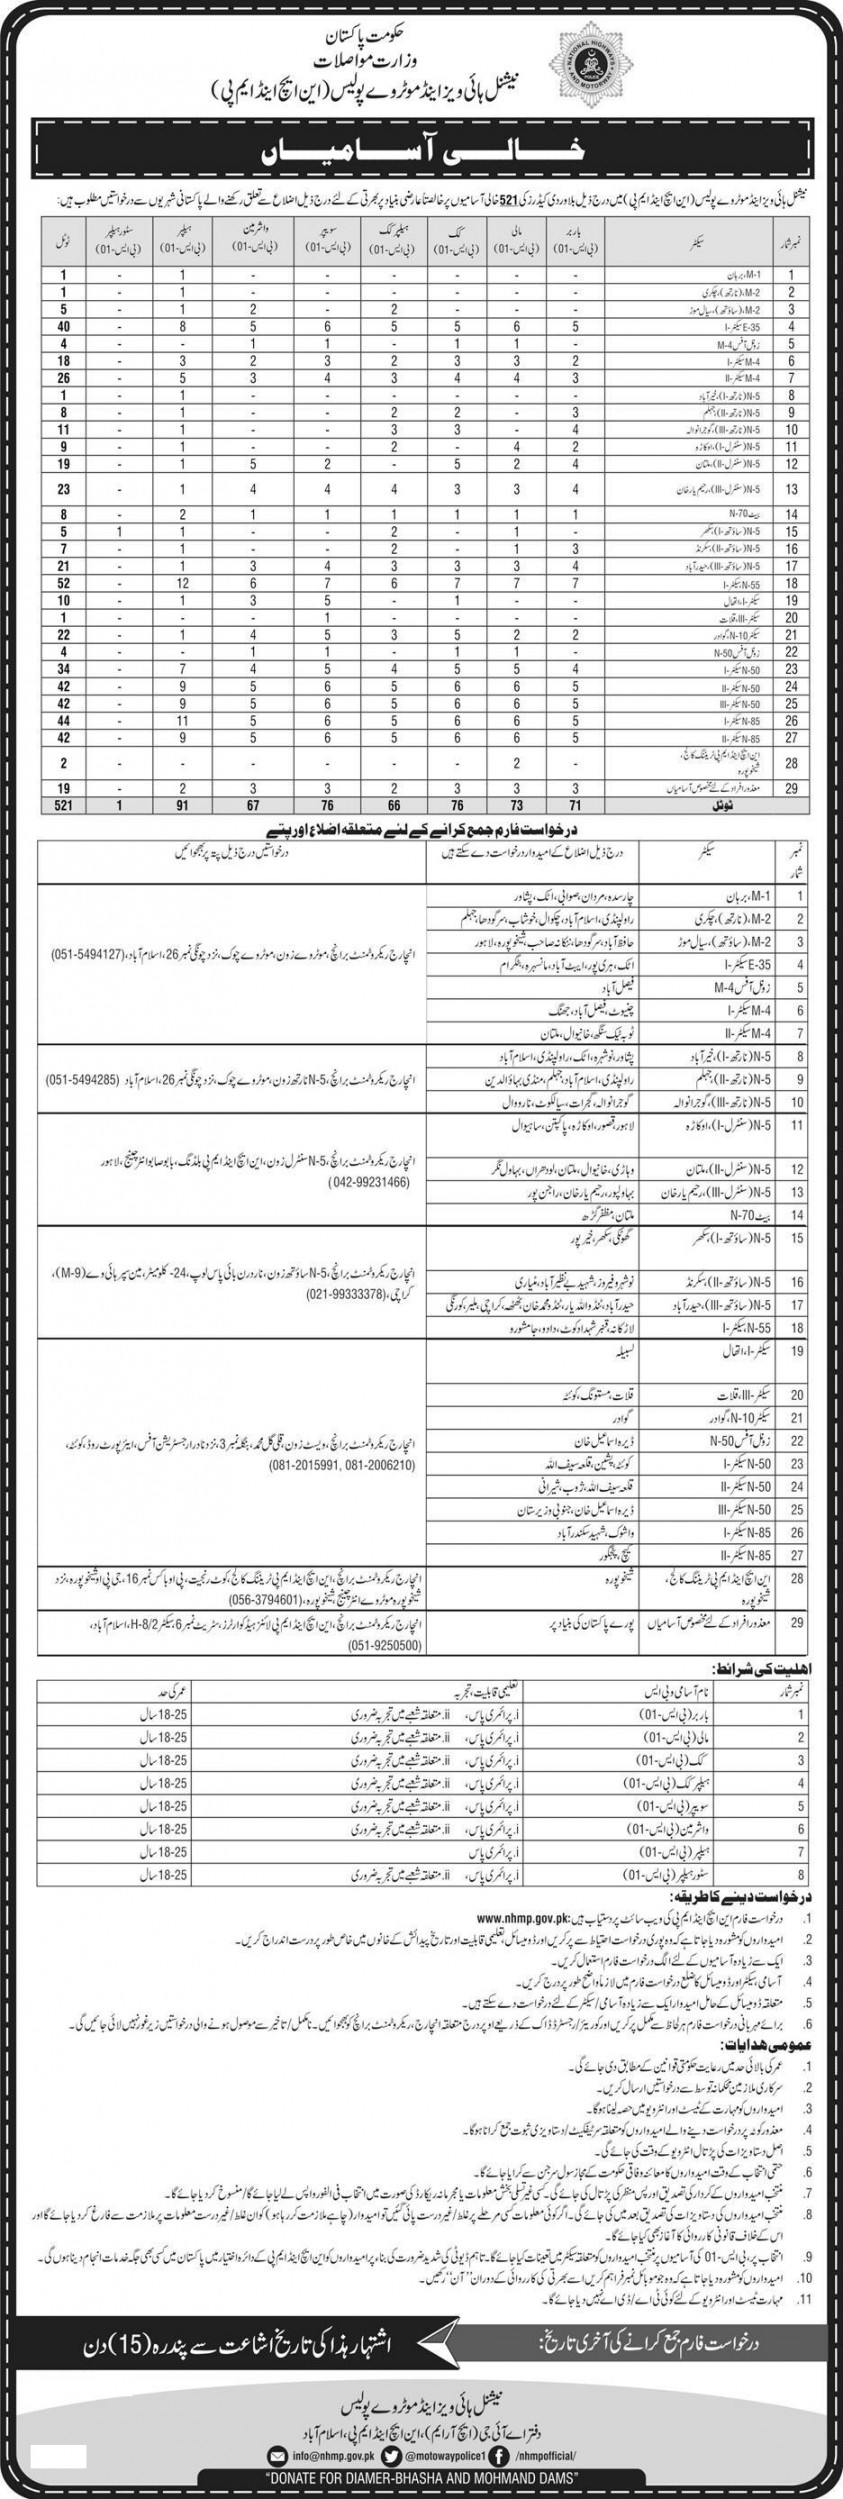 Motorway Police Barbar, Mali, Cook, Helper, Sweeper, Washer Man, Helper and Store Helper 521 Positions Latest NHMP Jobs Advertisement 2018